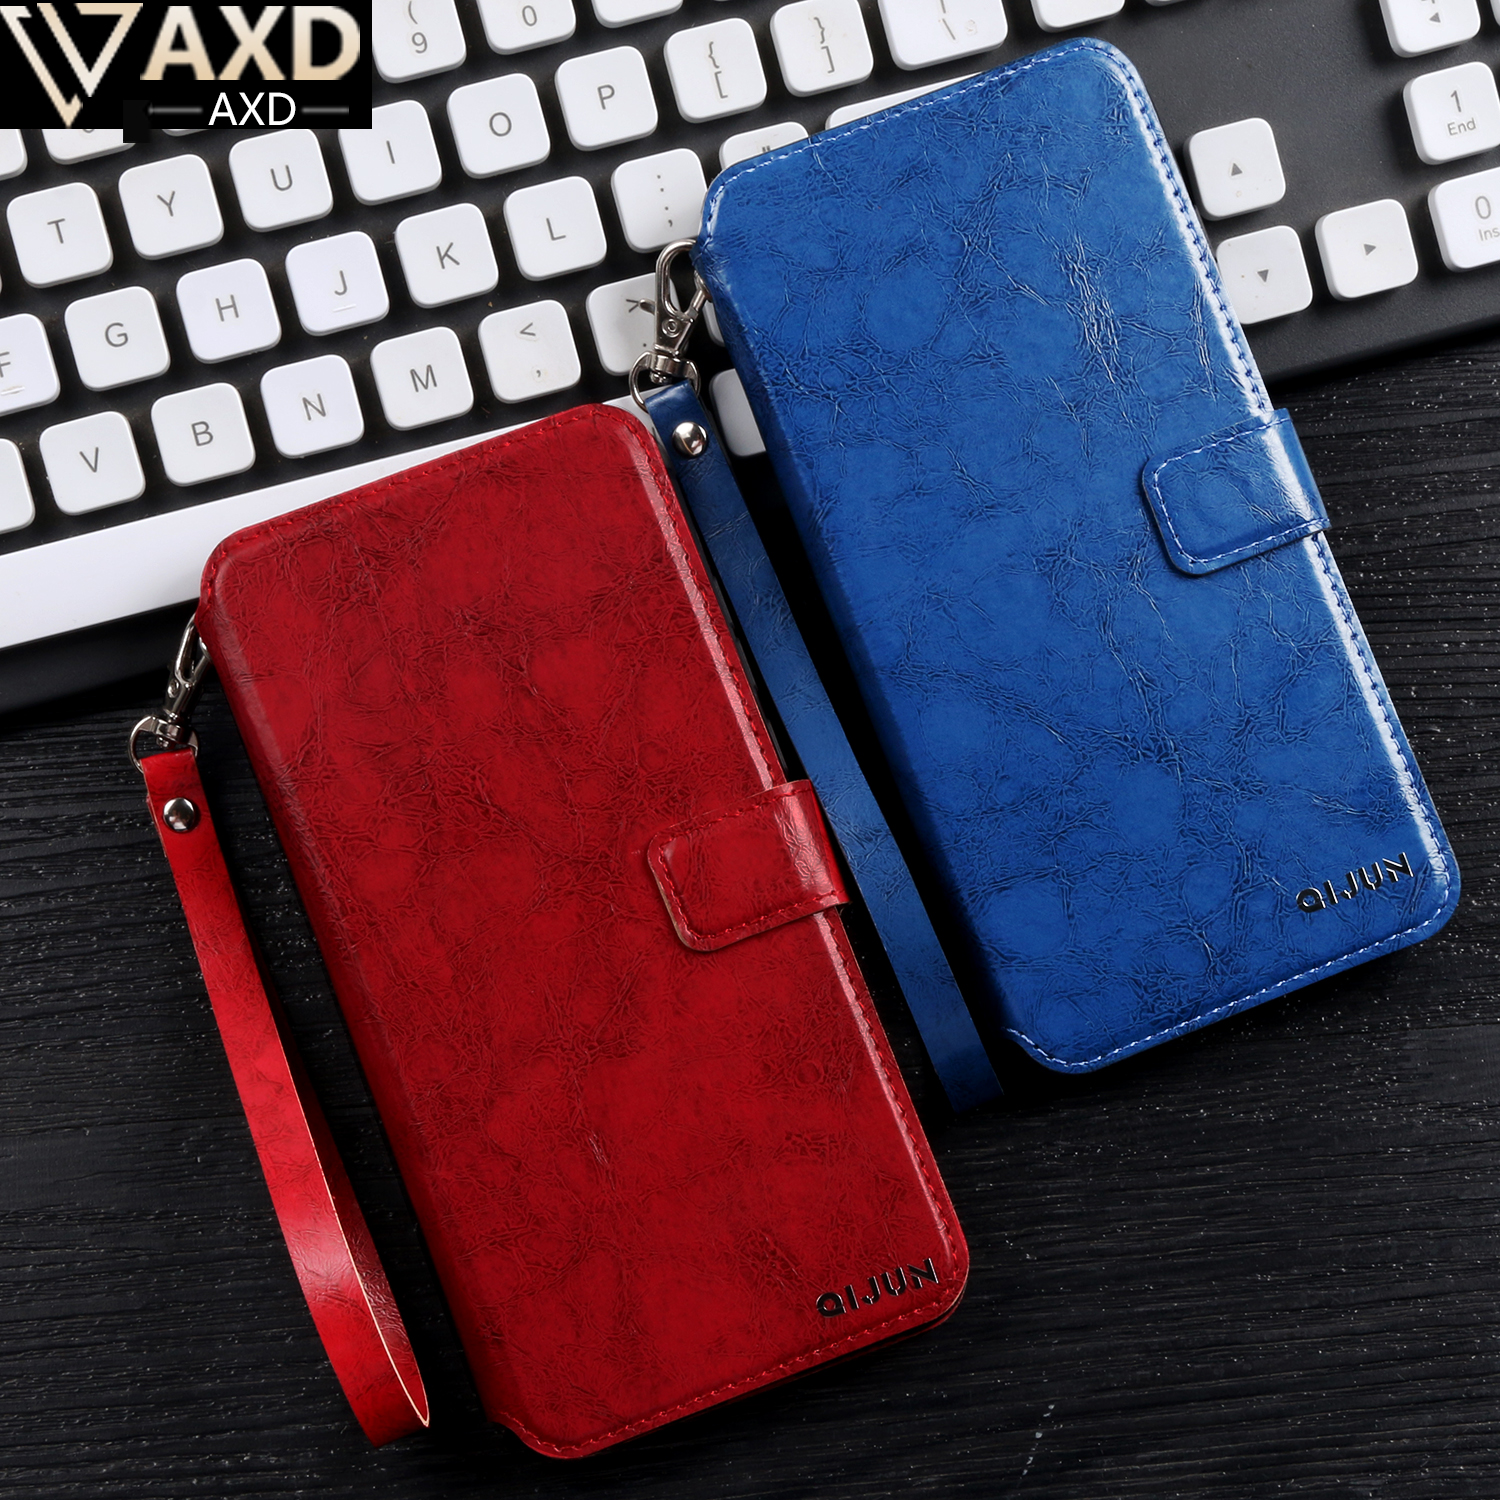 Coin Purses & Holders Card & Id Holders Qualified Usa Oil Soft Red Complex Double-headed Eagle Pu Leather Passport Holder Built In Rfid Blocking Protect Personal Information 2019 New Fashion Style Online